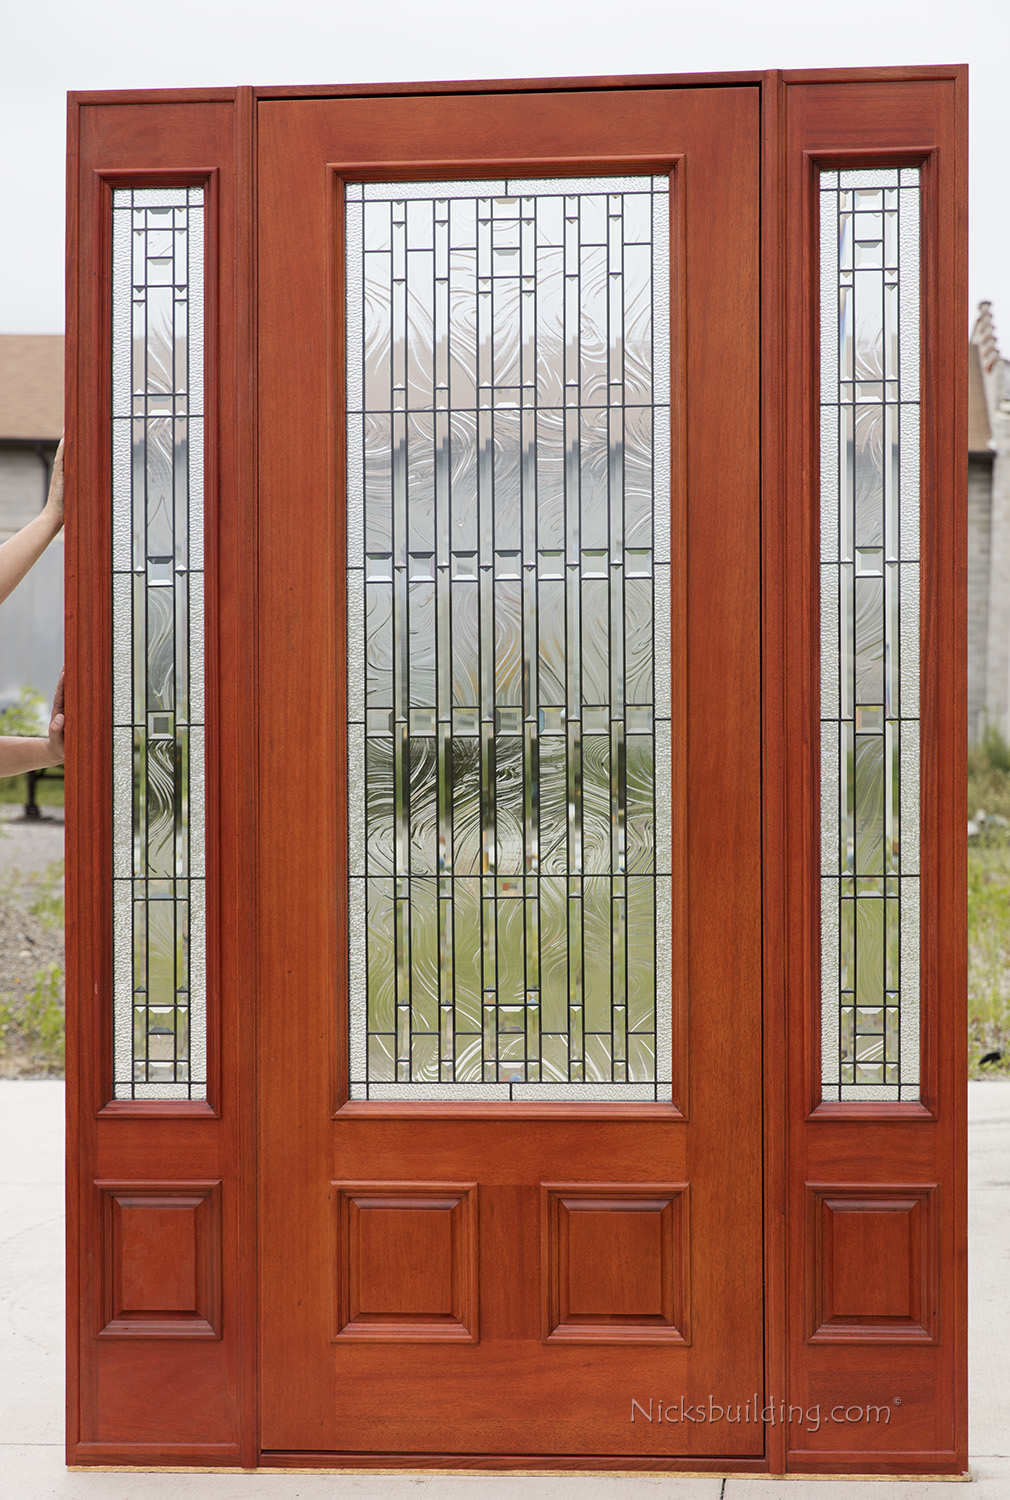 Exterior mahogany doors pfc 252 walnut stained for 8 foot exterior doors